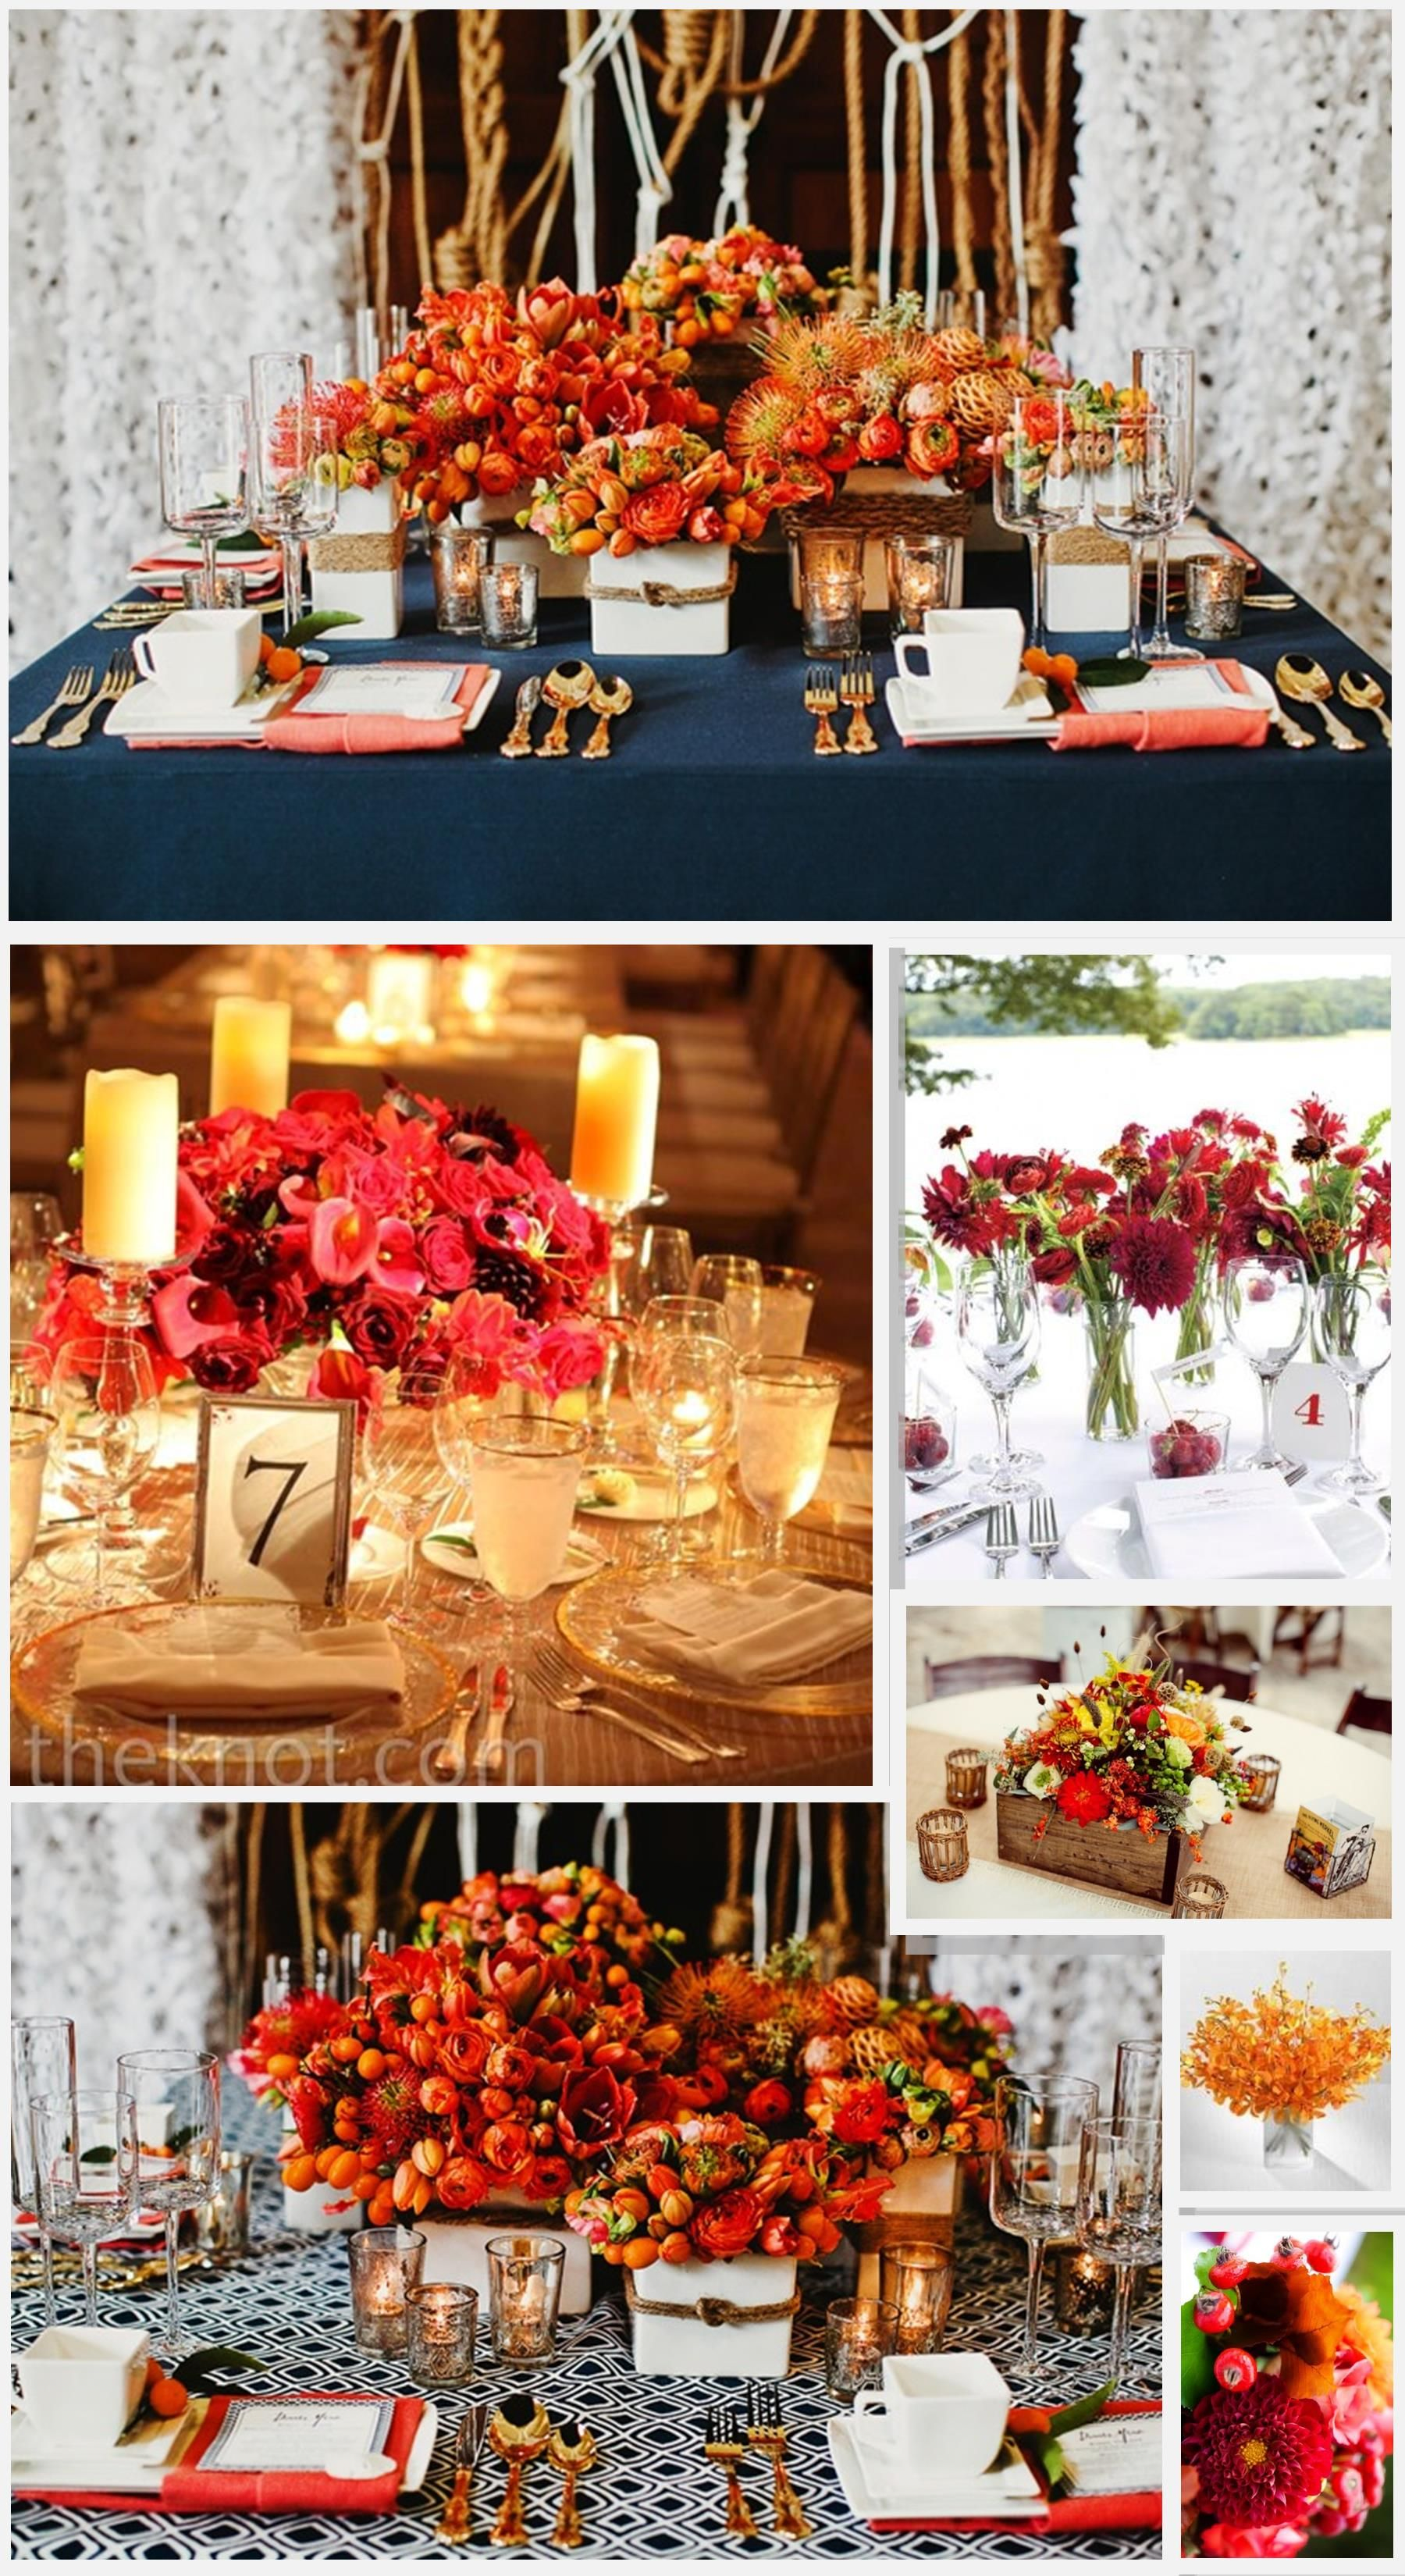 Our wedding colors are red, navy blue, and orange so the tables ...